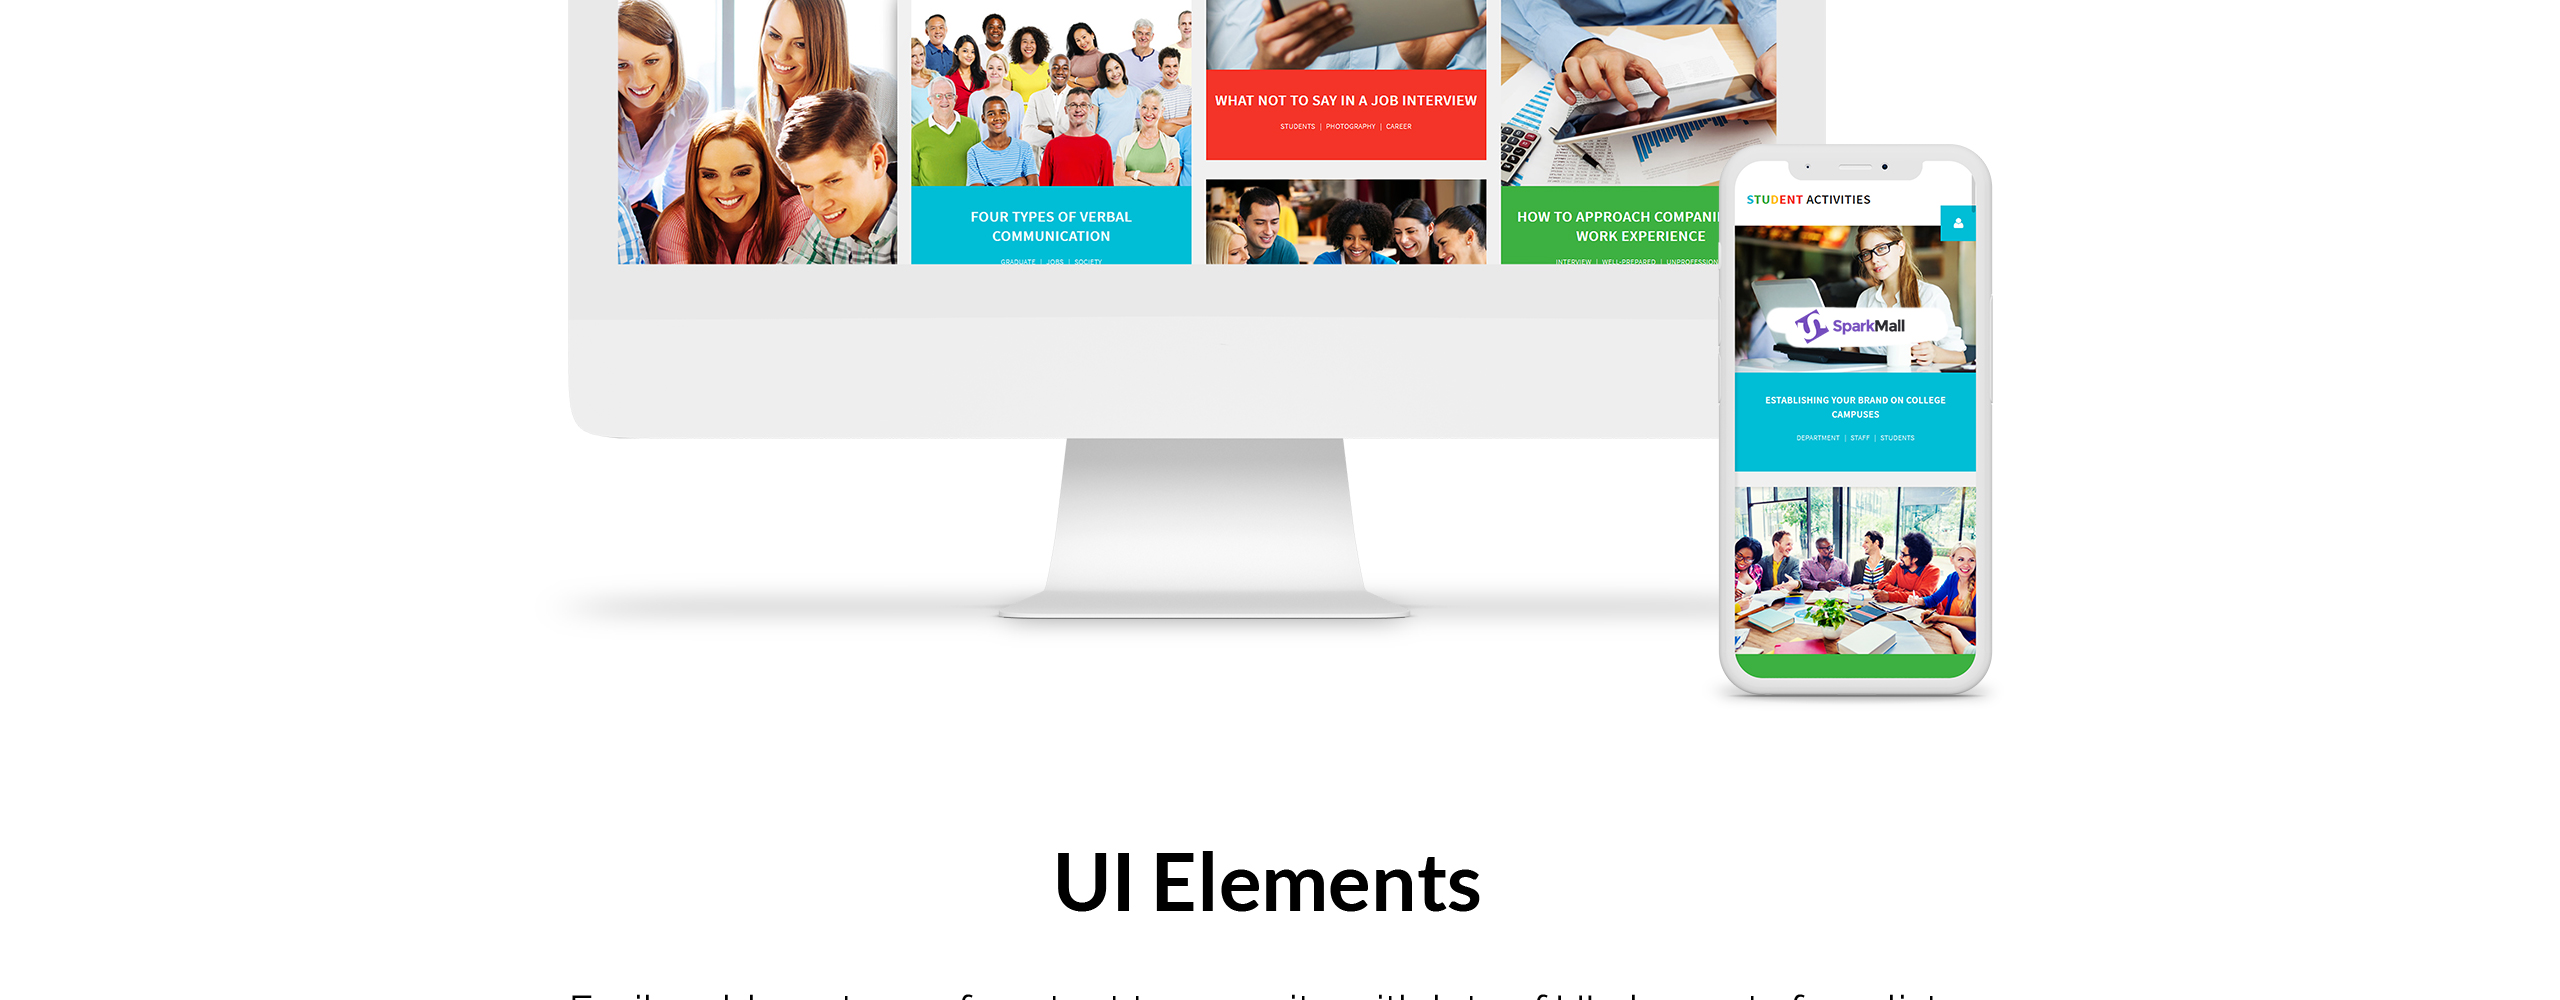 Student activities Joomla Template